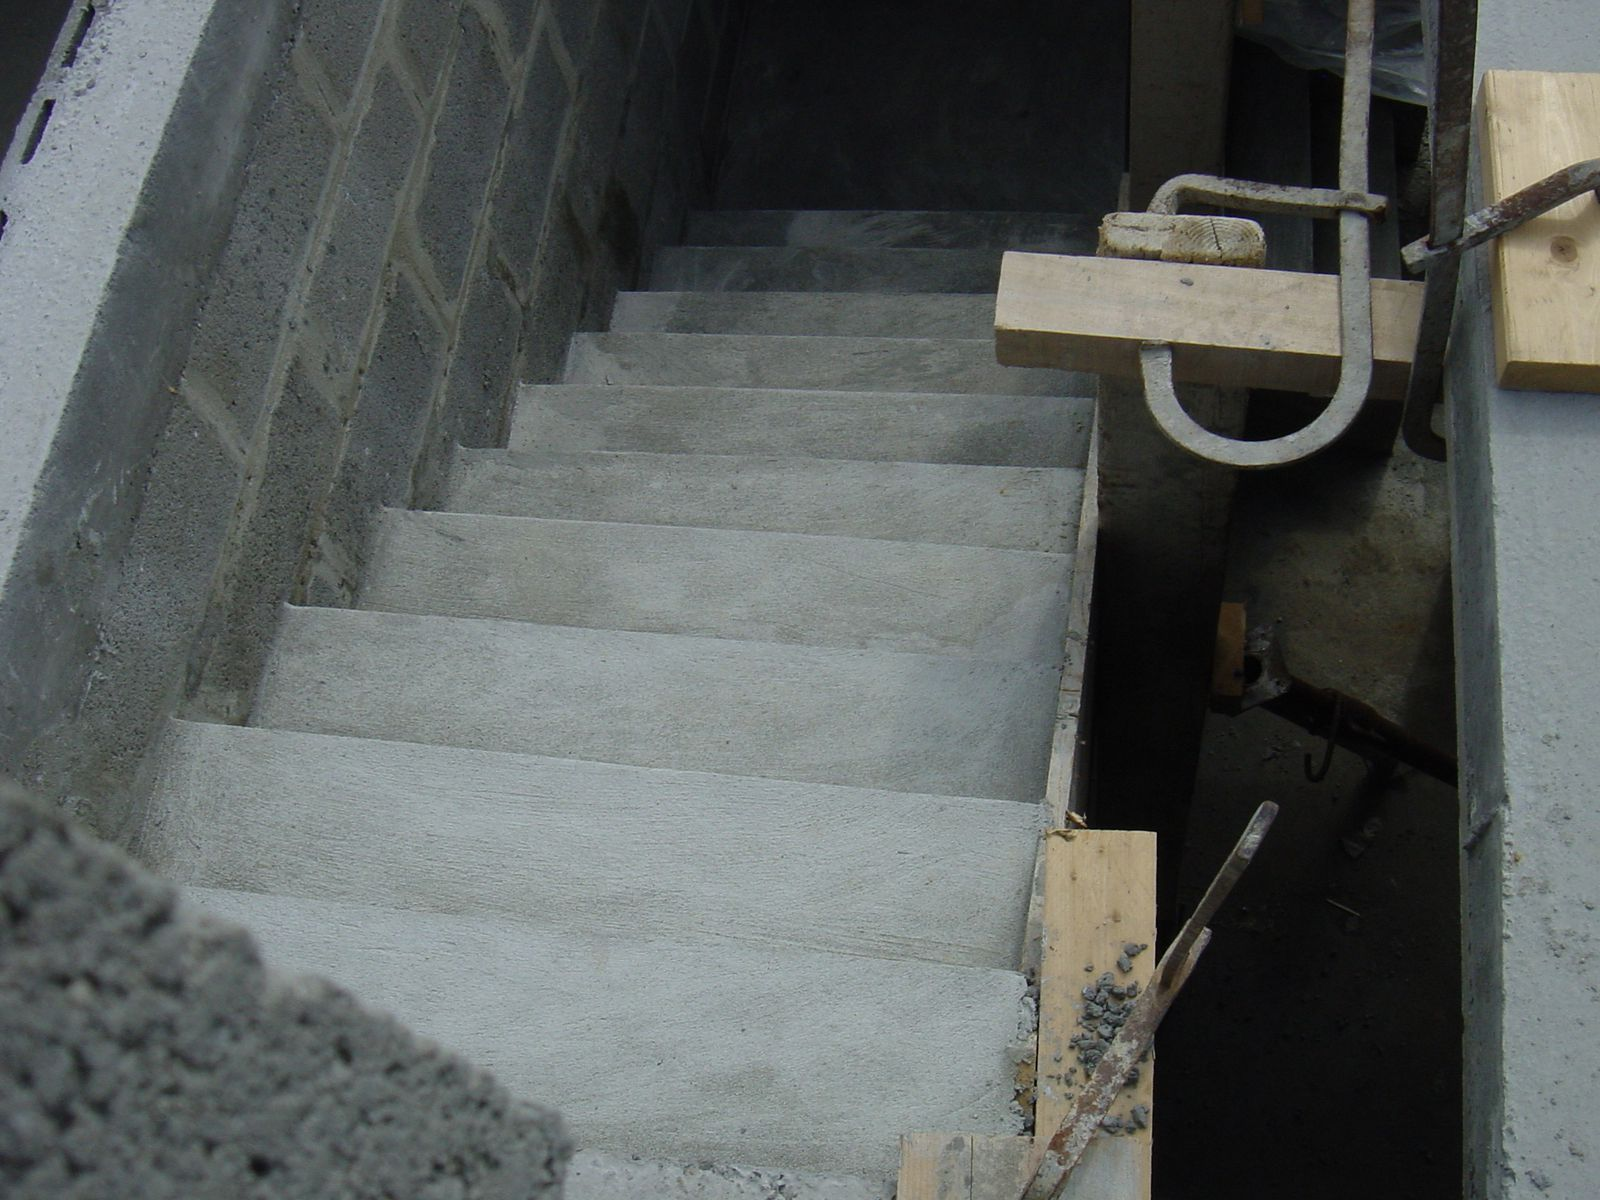 Escalier b ton soucis construction maison iso confort for Dalle beton finition quartz